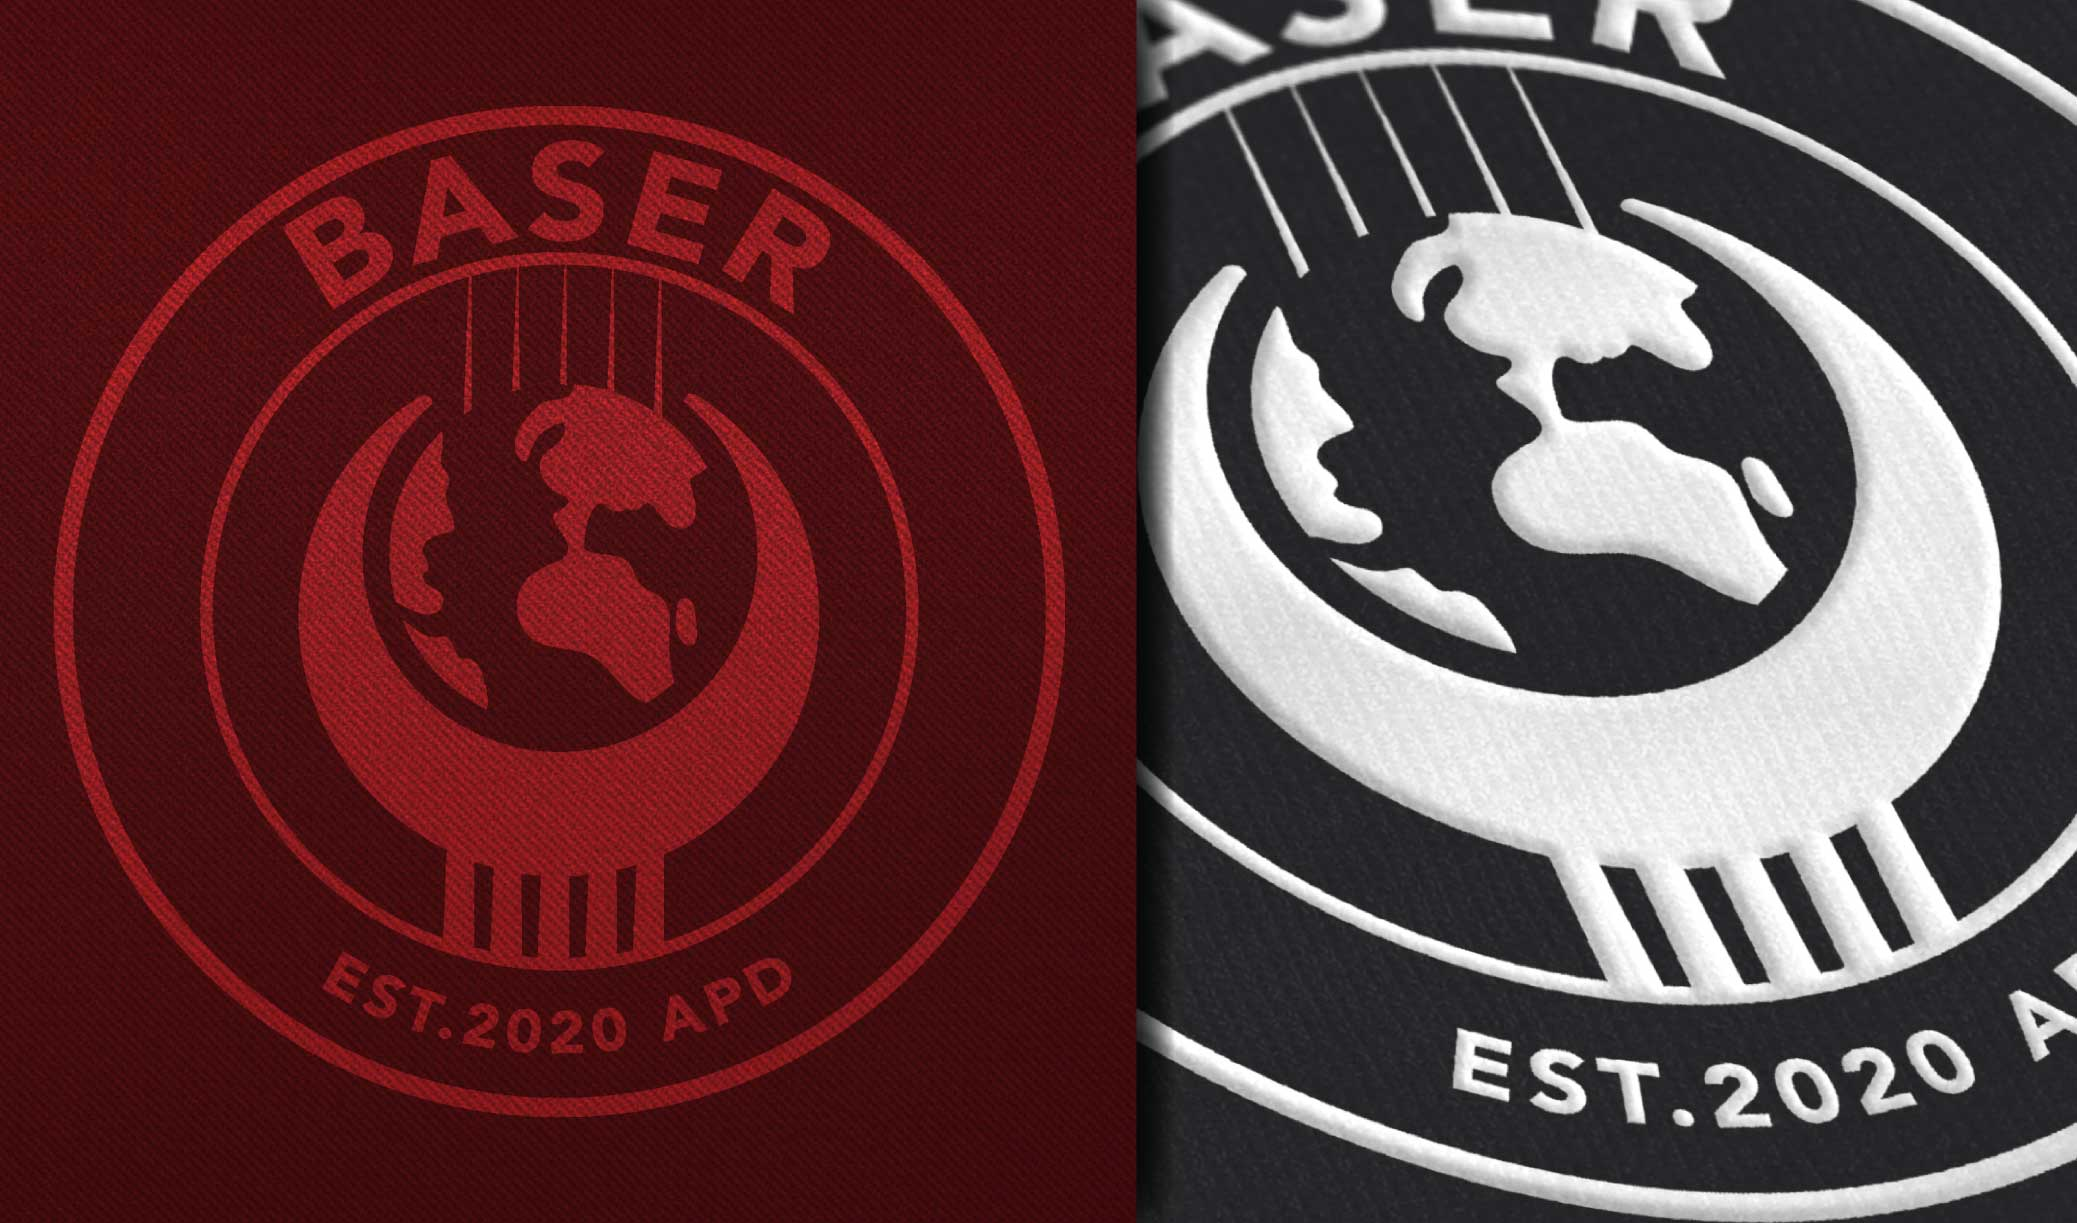 project-2-branding-logo-baserstore-1